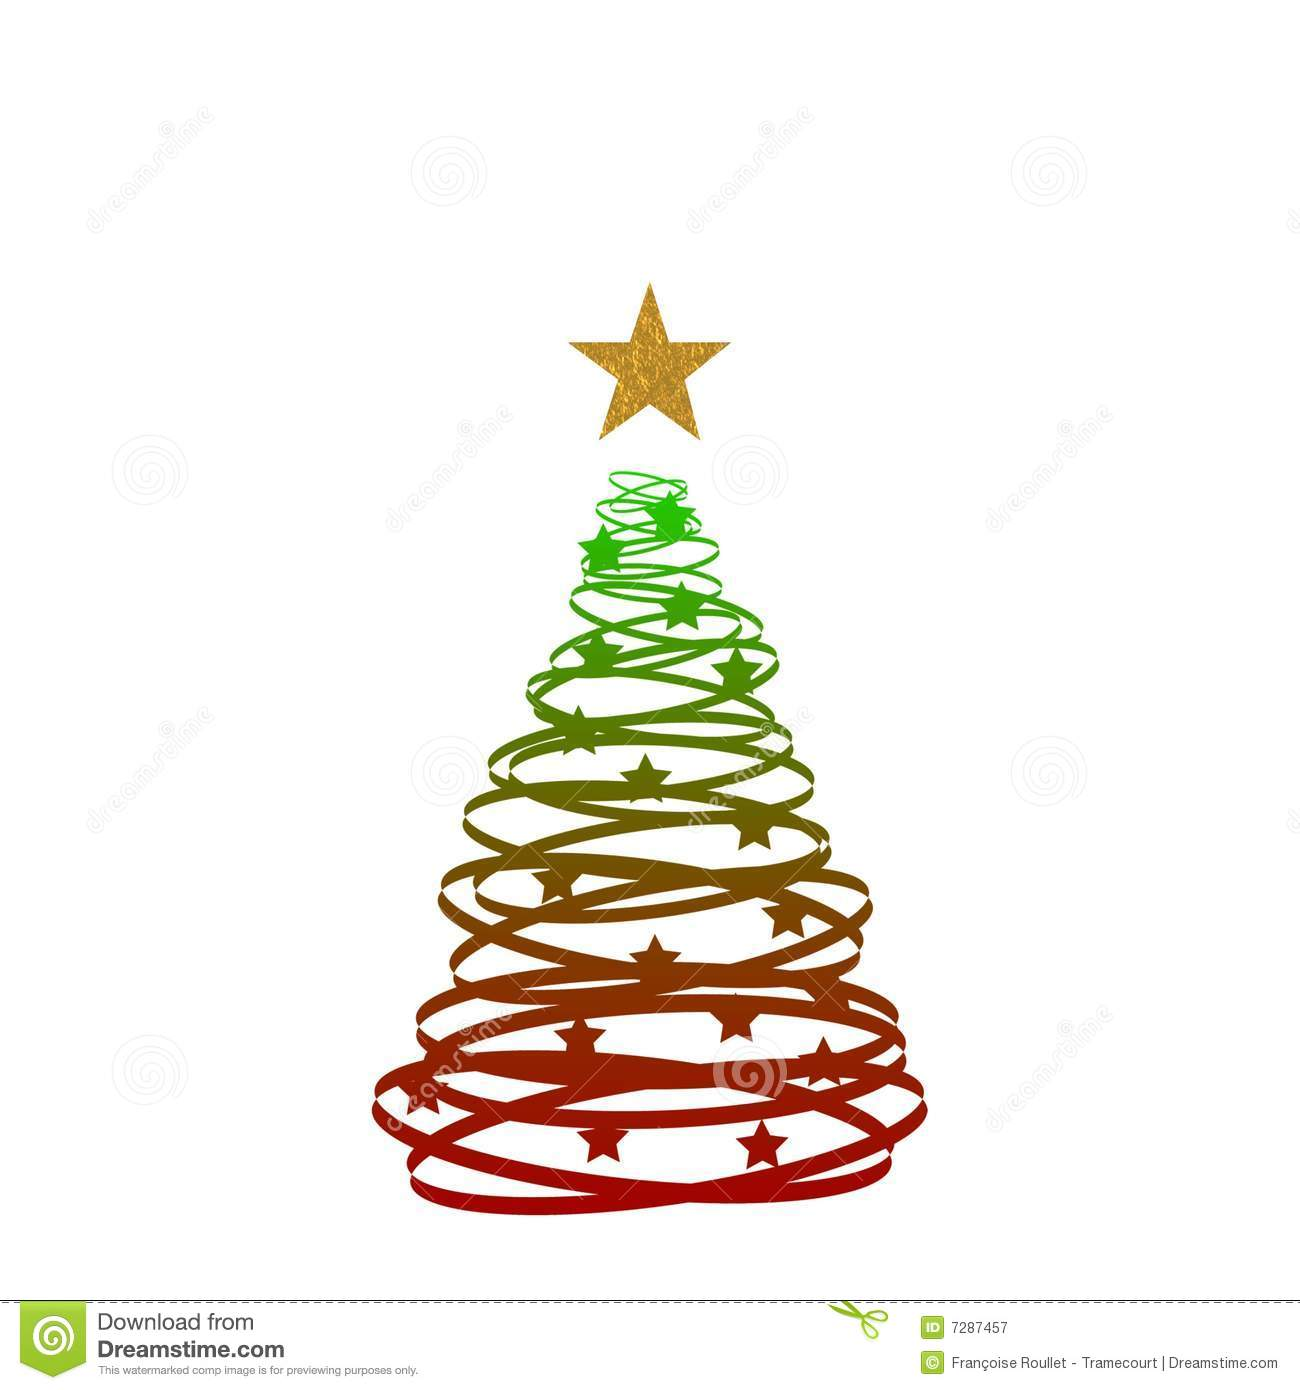 Red green gold christmas tree royalty free stock for Red green and gold christmas tree ideas